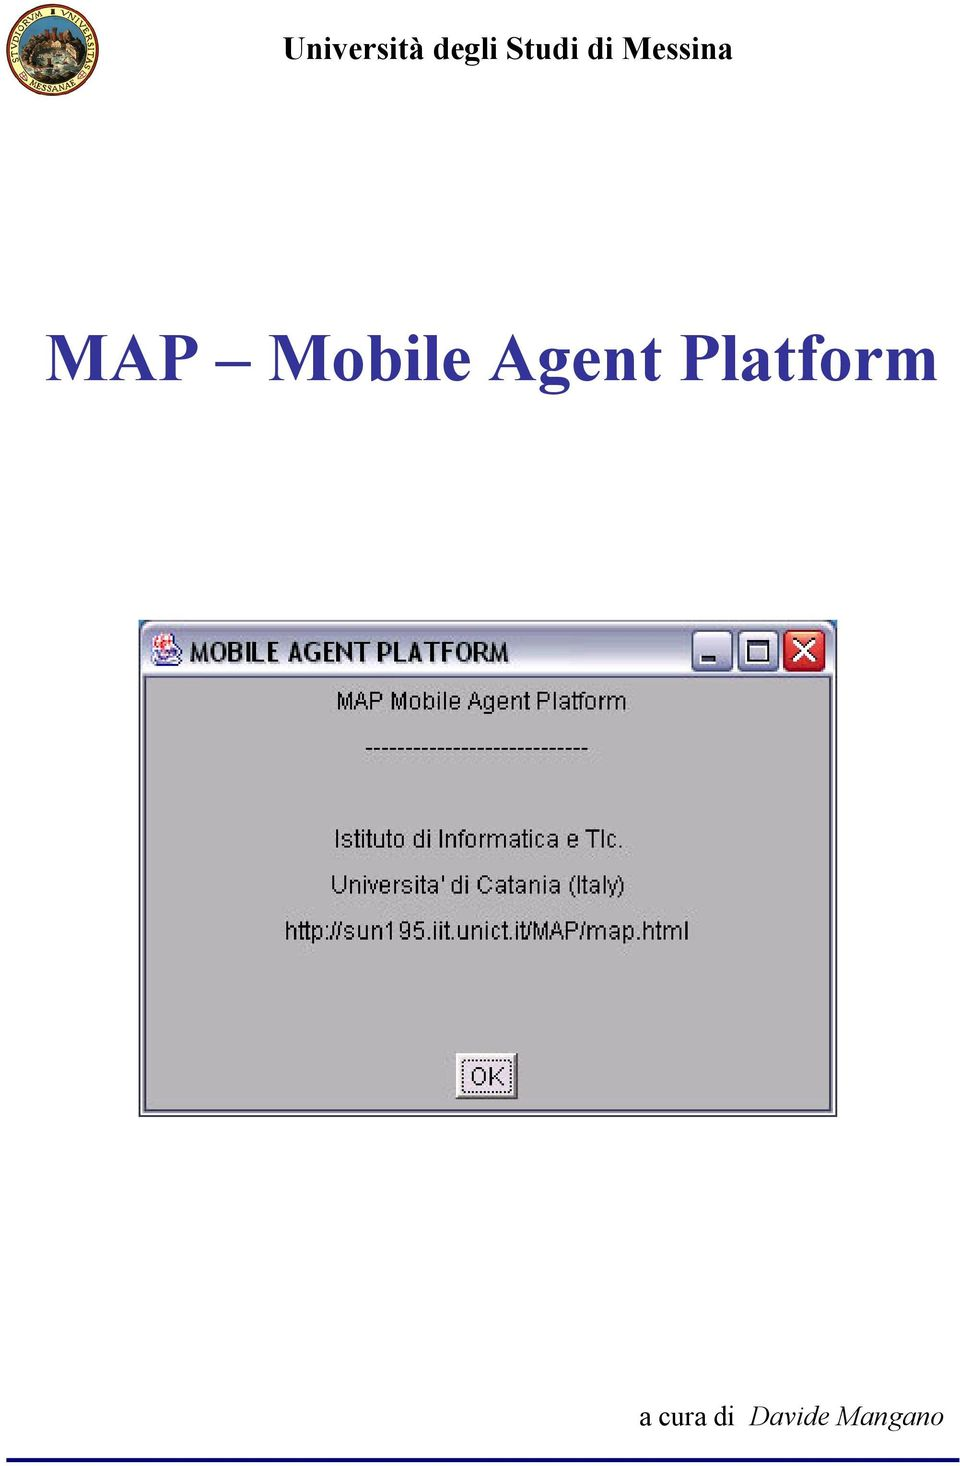 MAP Mobile Agent